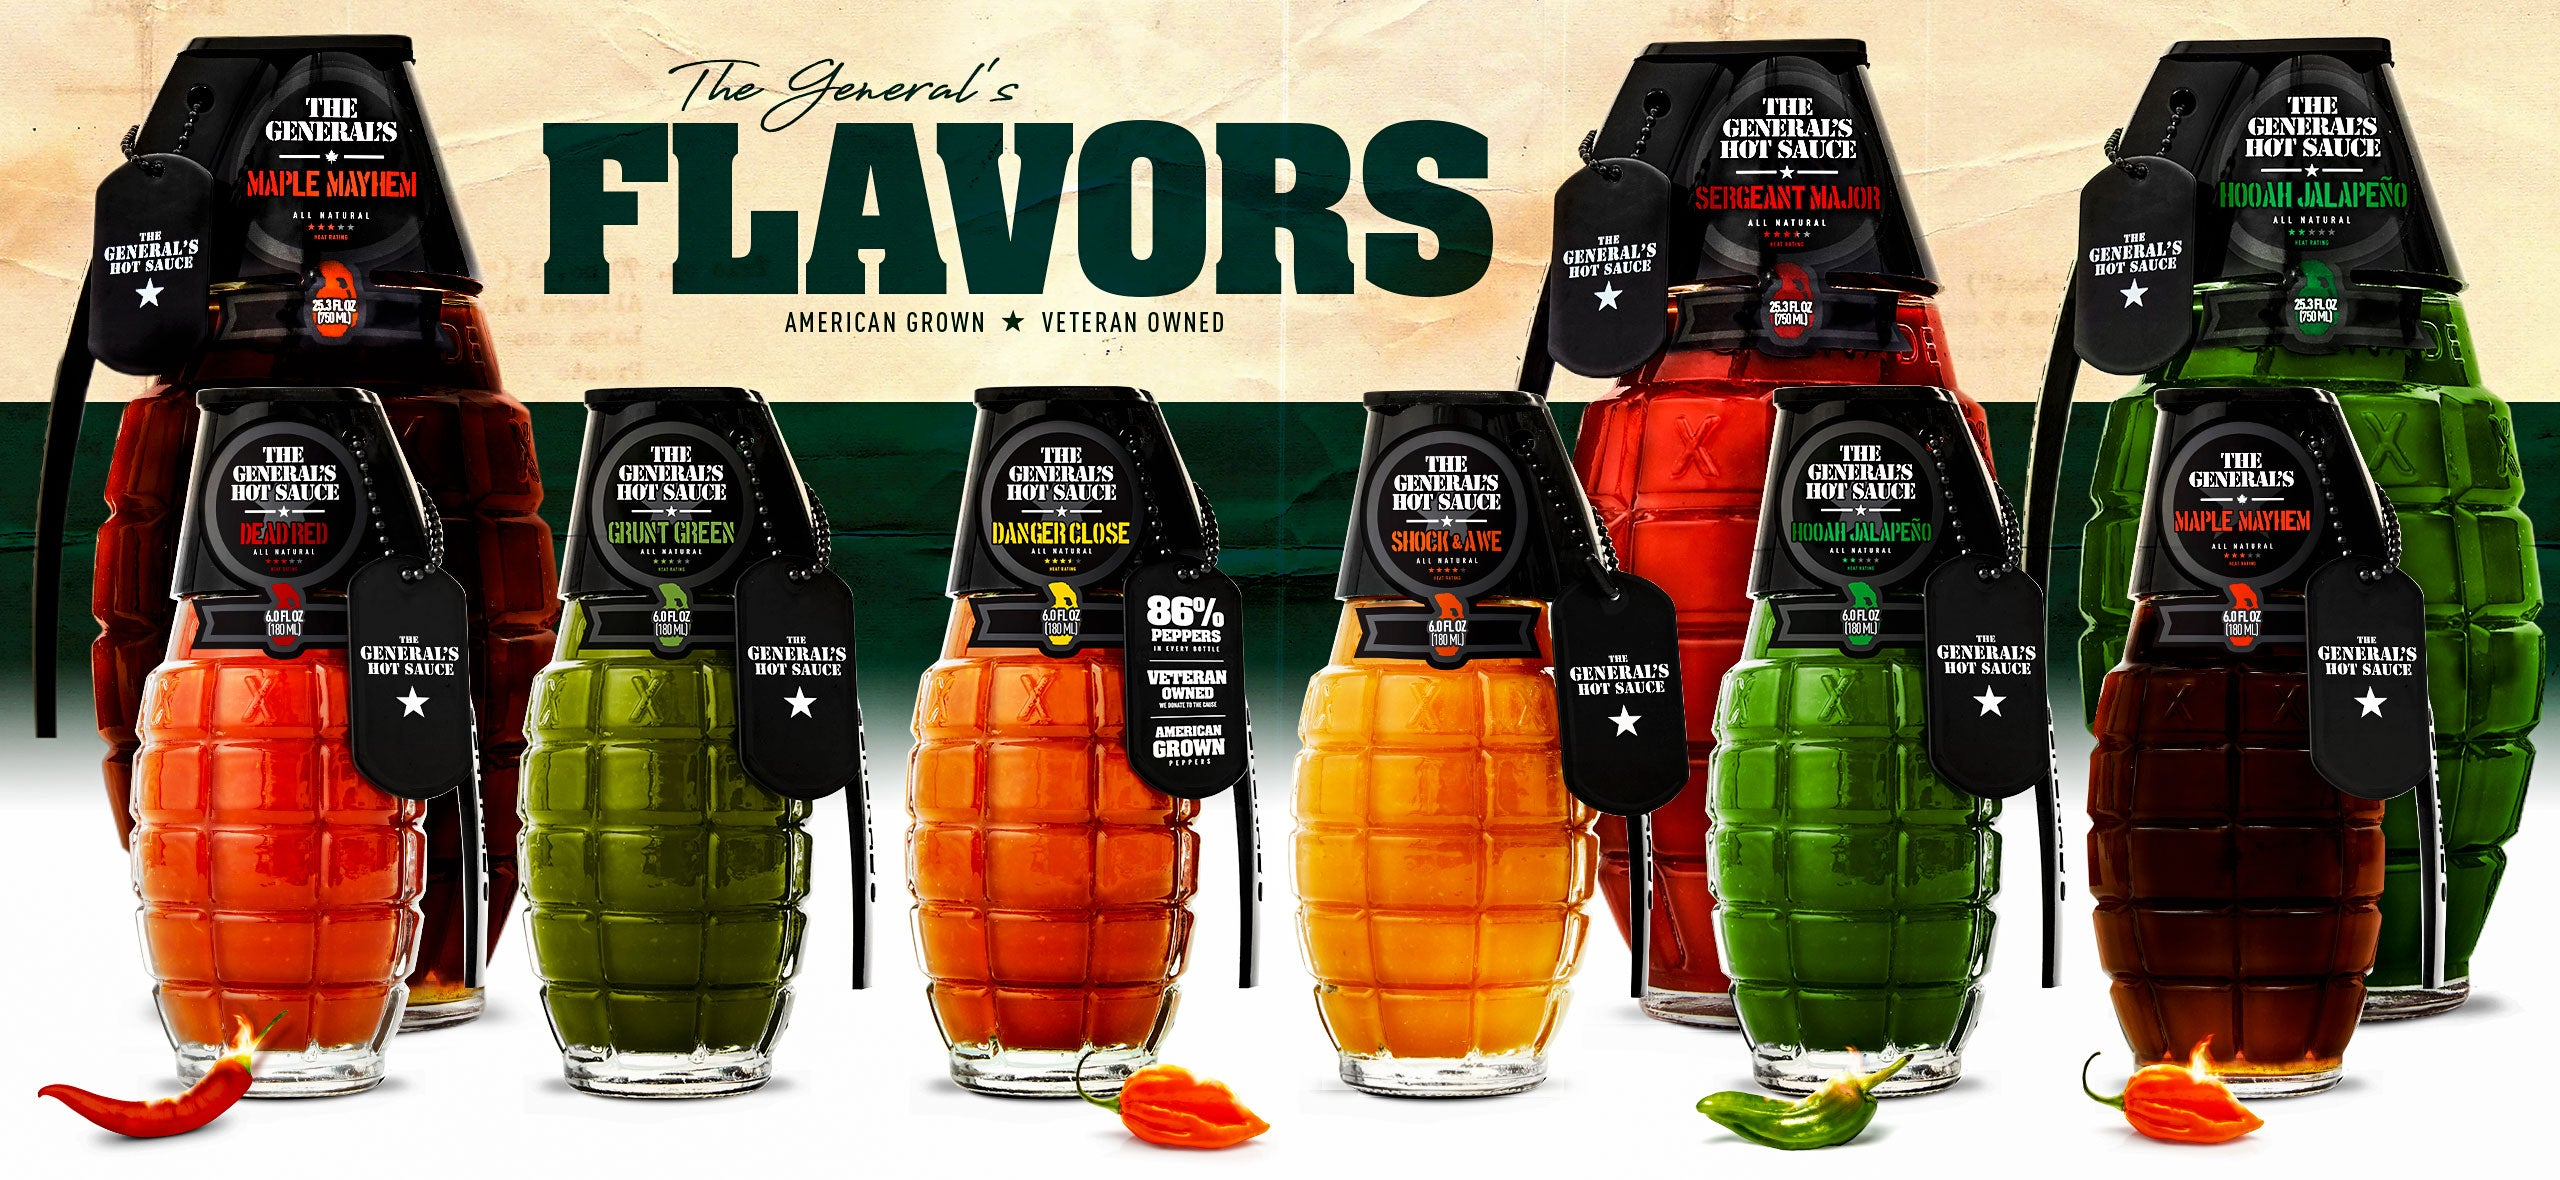 The General's Hot Sauce Family Of Flavors